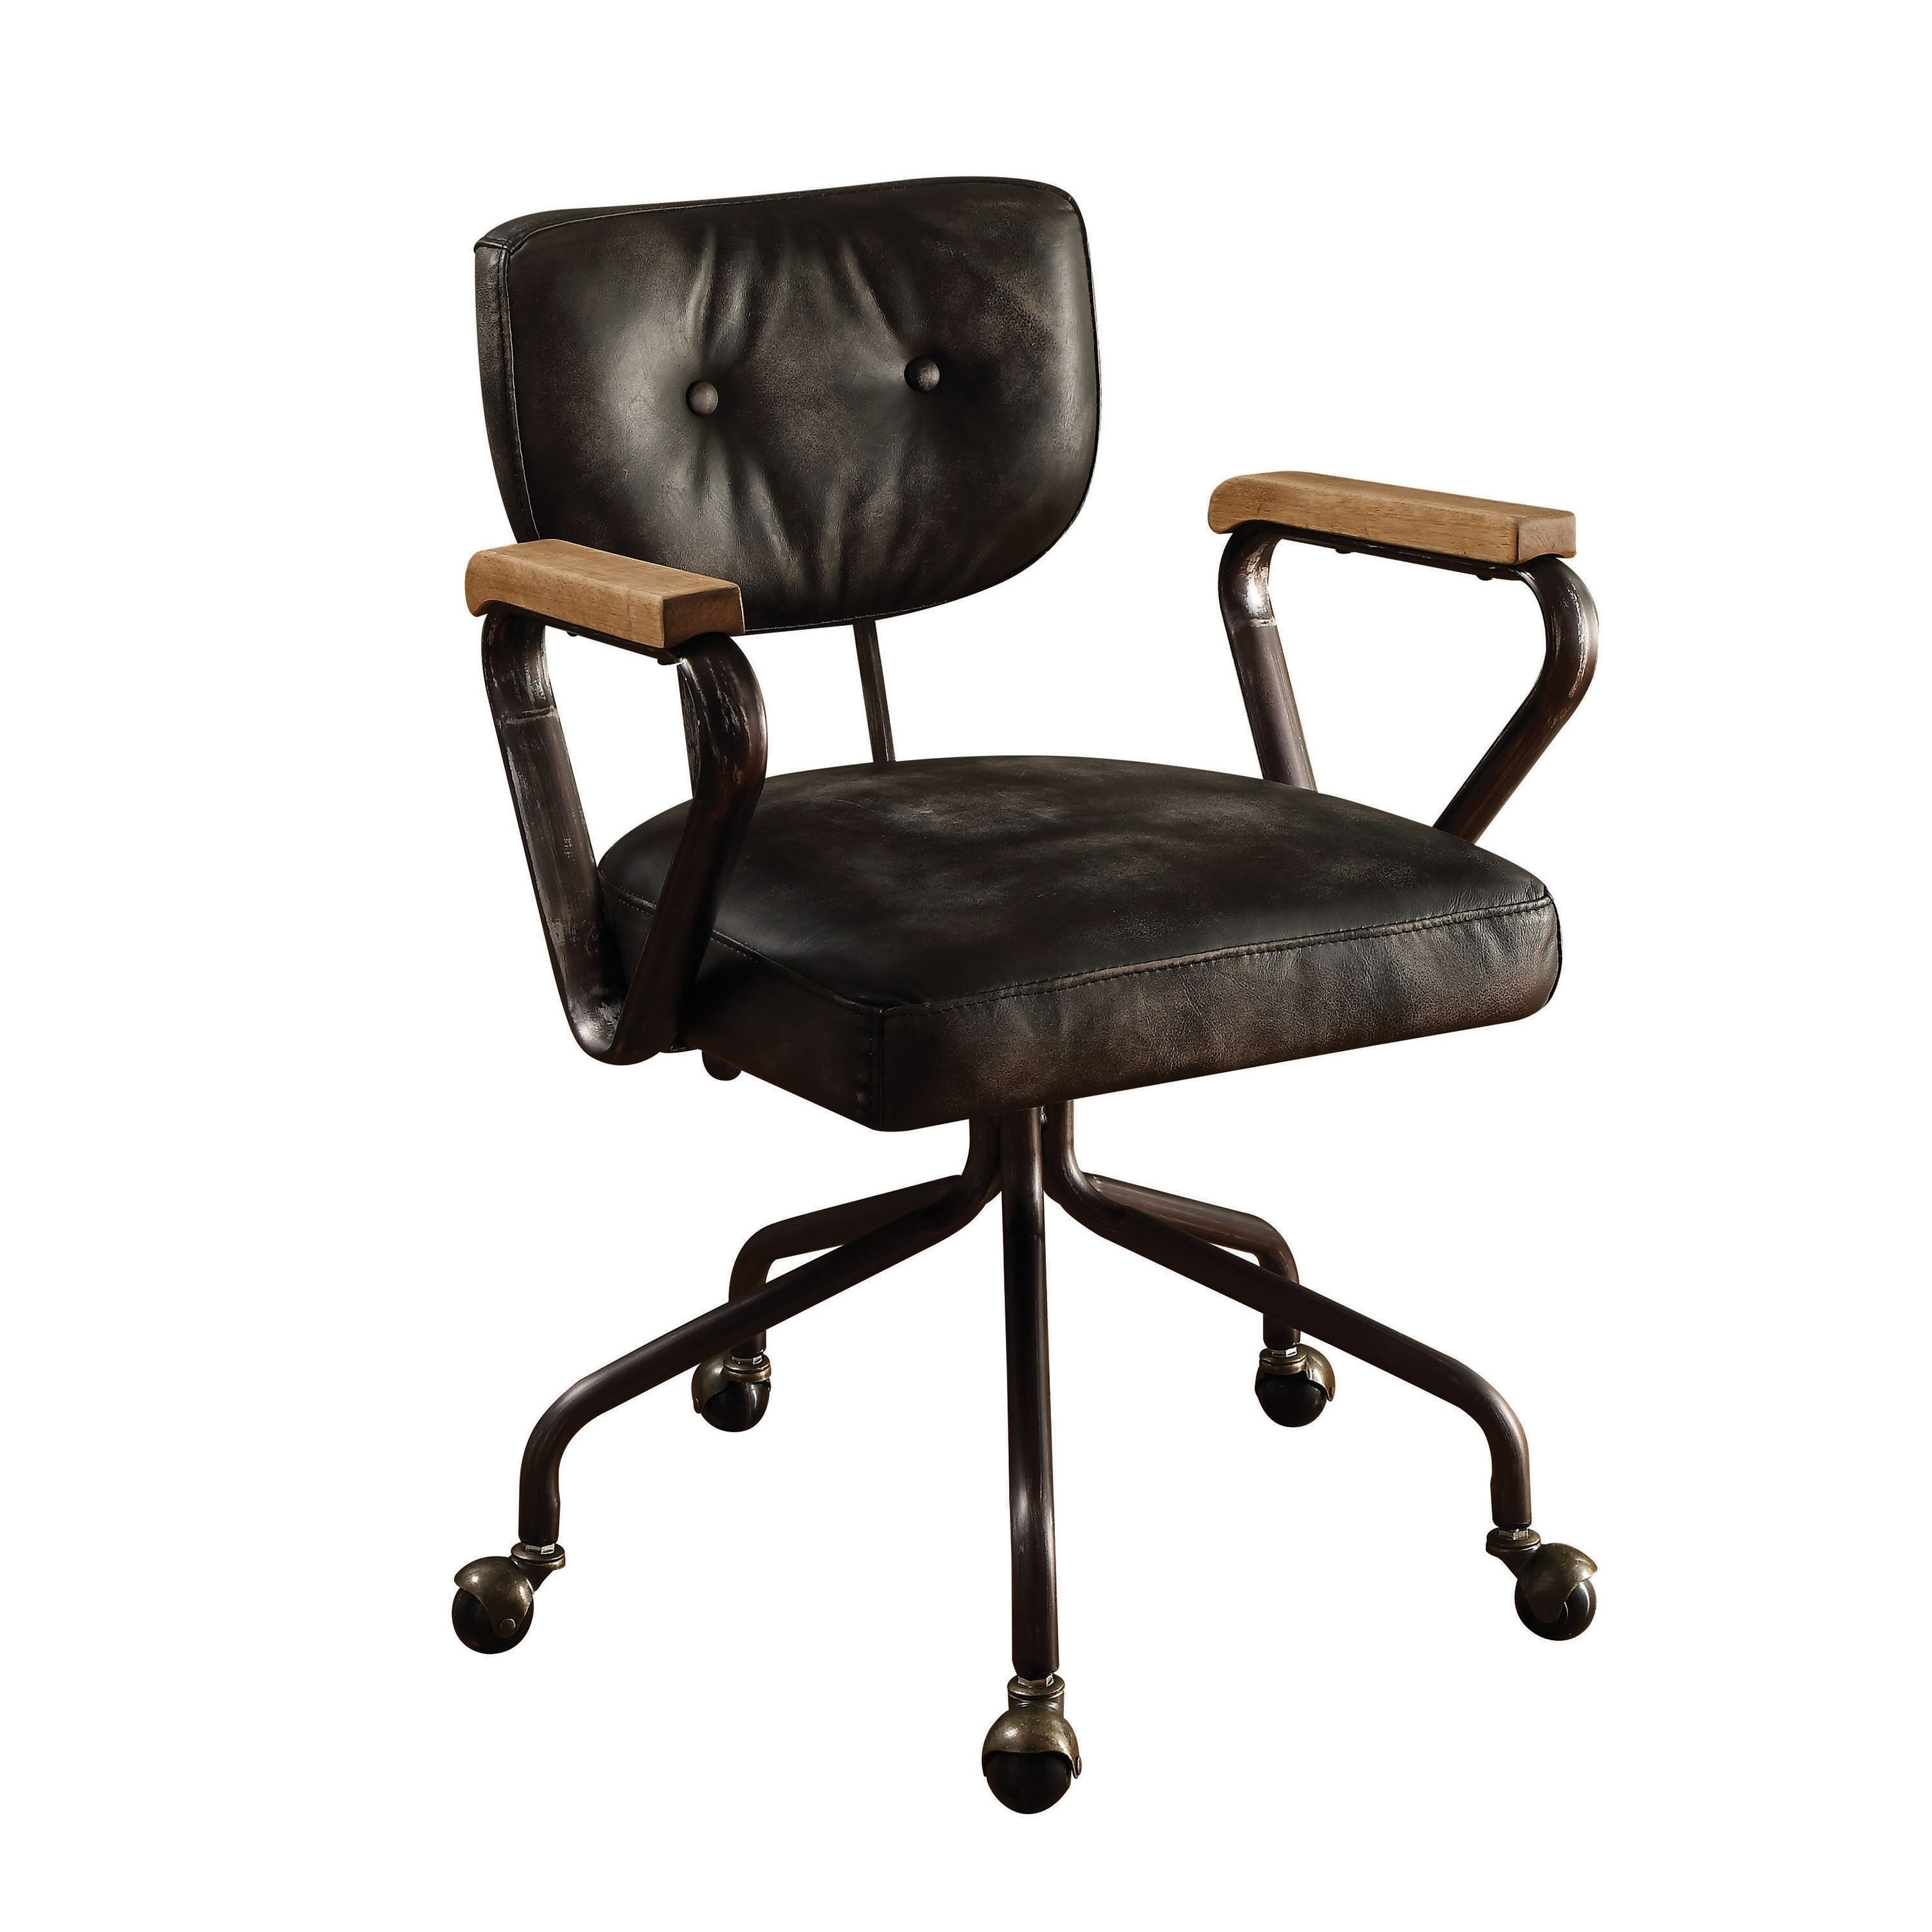 Marvelous Acme Hallie Executive Office Chair Vintage Black Top Grain Leather Gamerscity Chair Design For Home Gamerscityorg